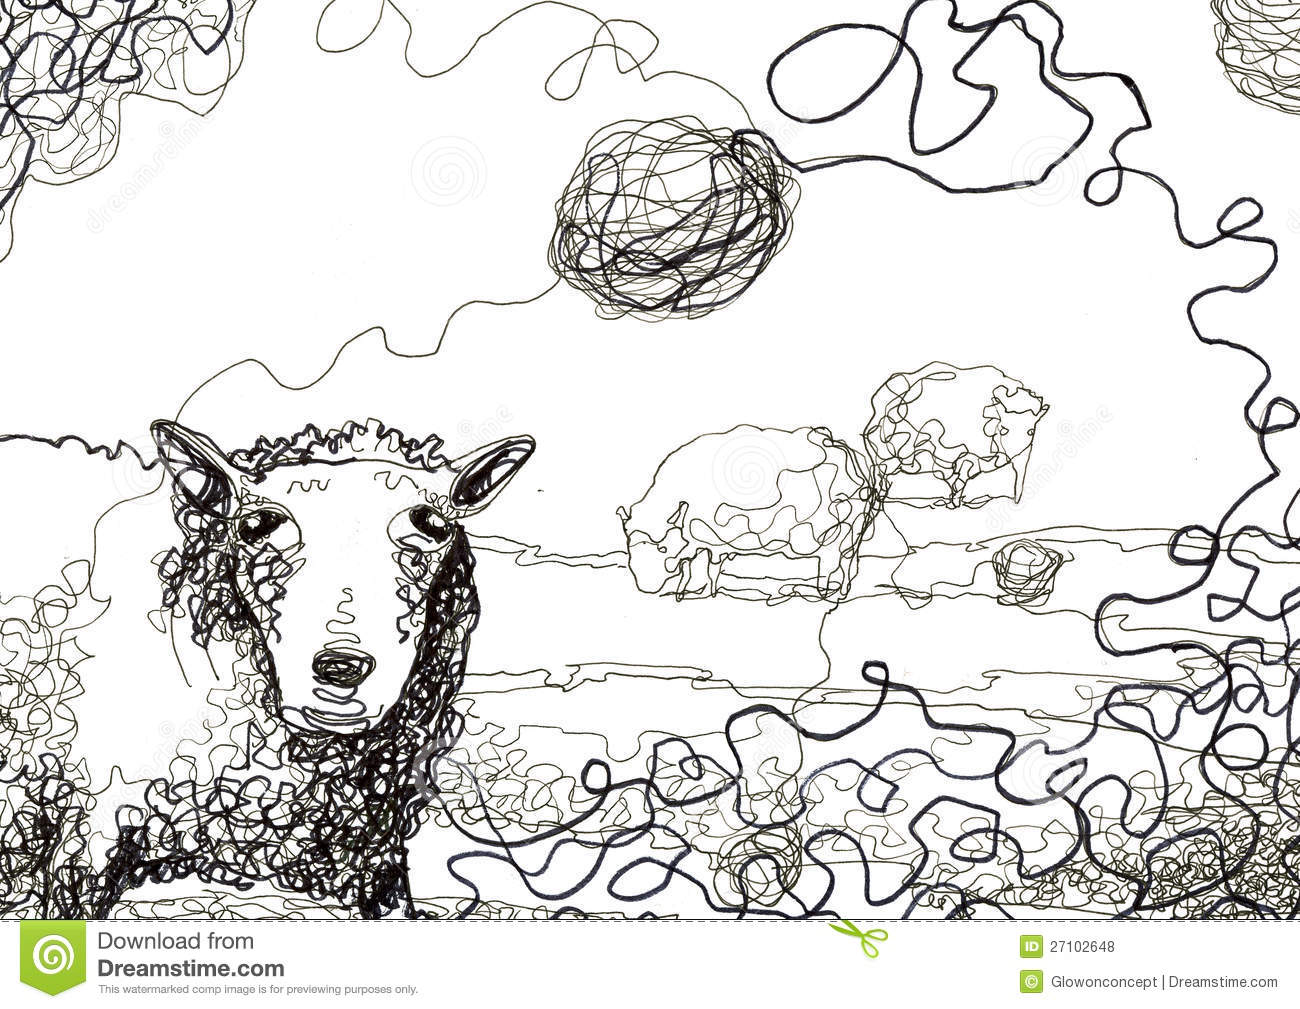 Line Drawing Sheep : Messy thread and sheep drawing stock illustration image